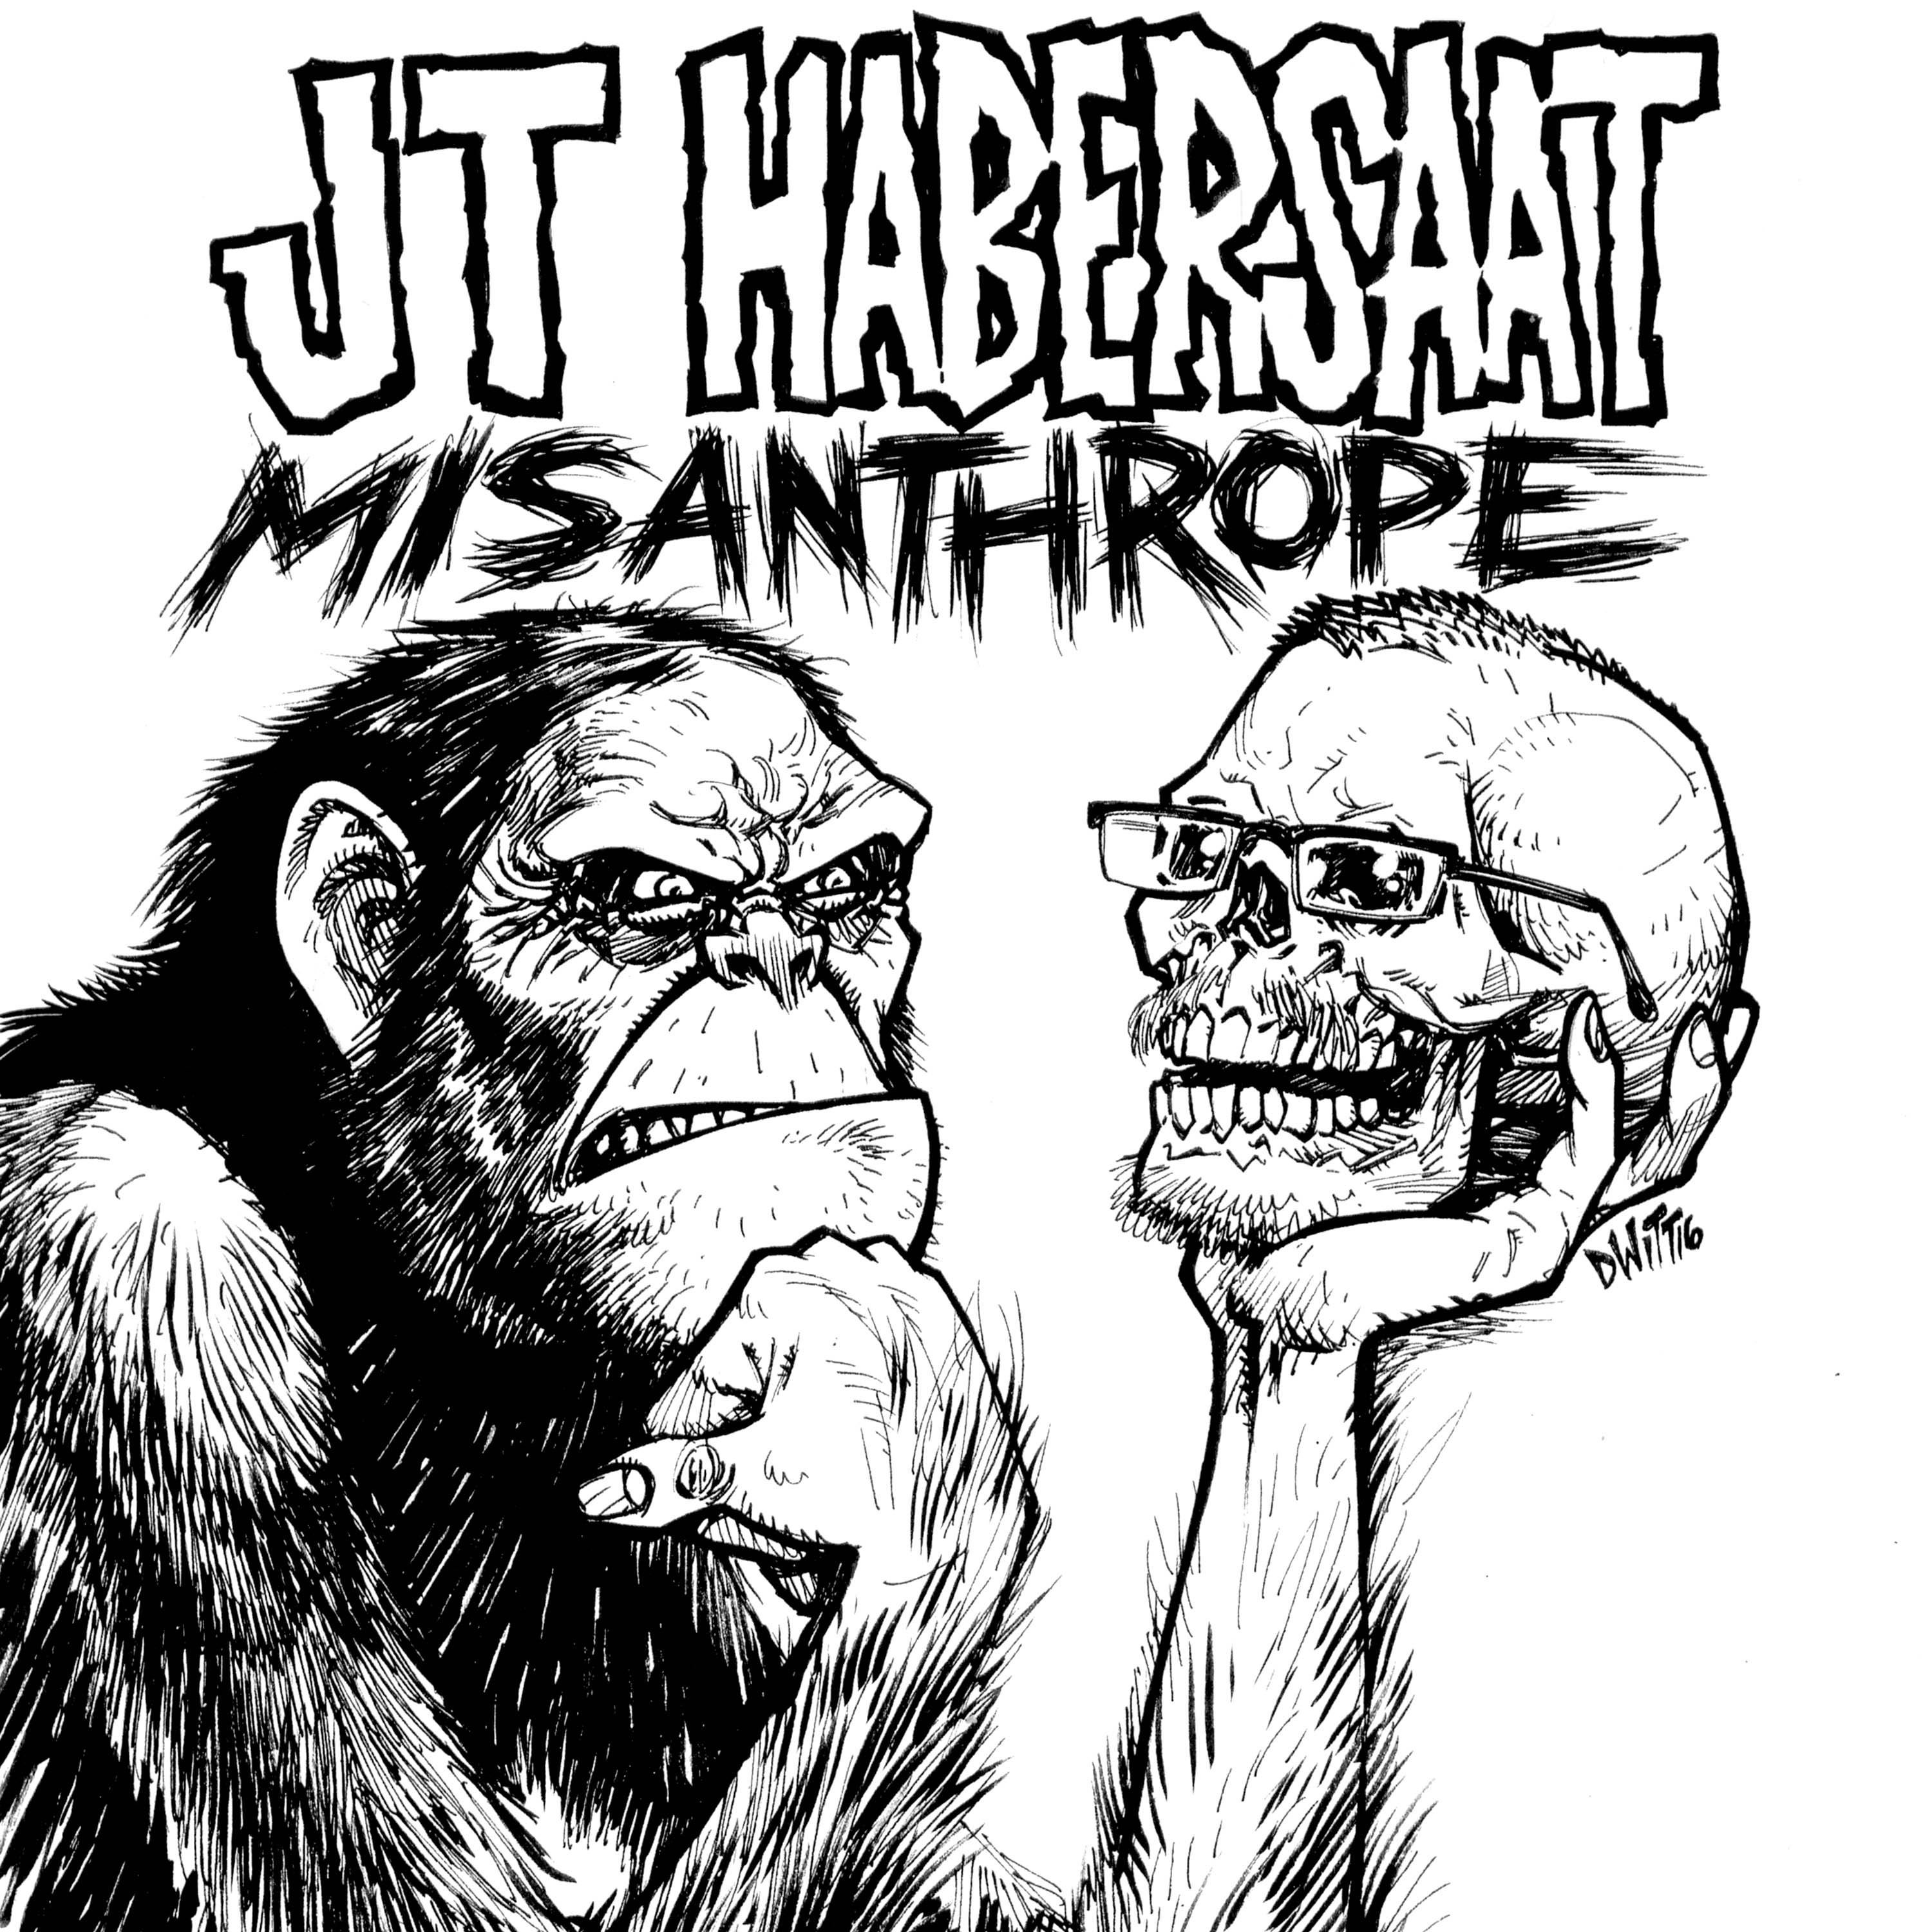 PUNK COMEDY NEWS: JT Habersaat's latest CD/DVD Misanthrope out now – Prepare yourself!